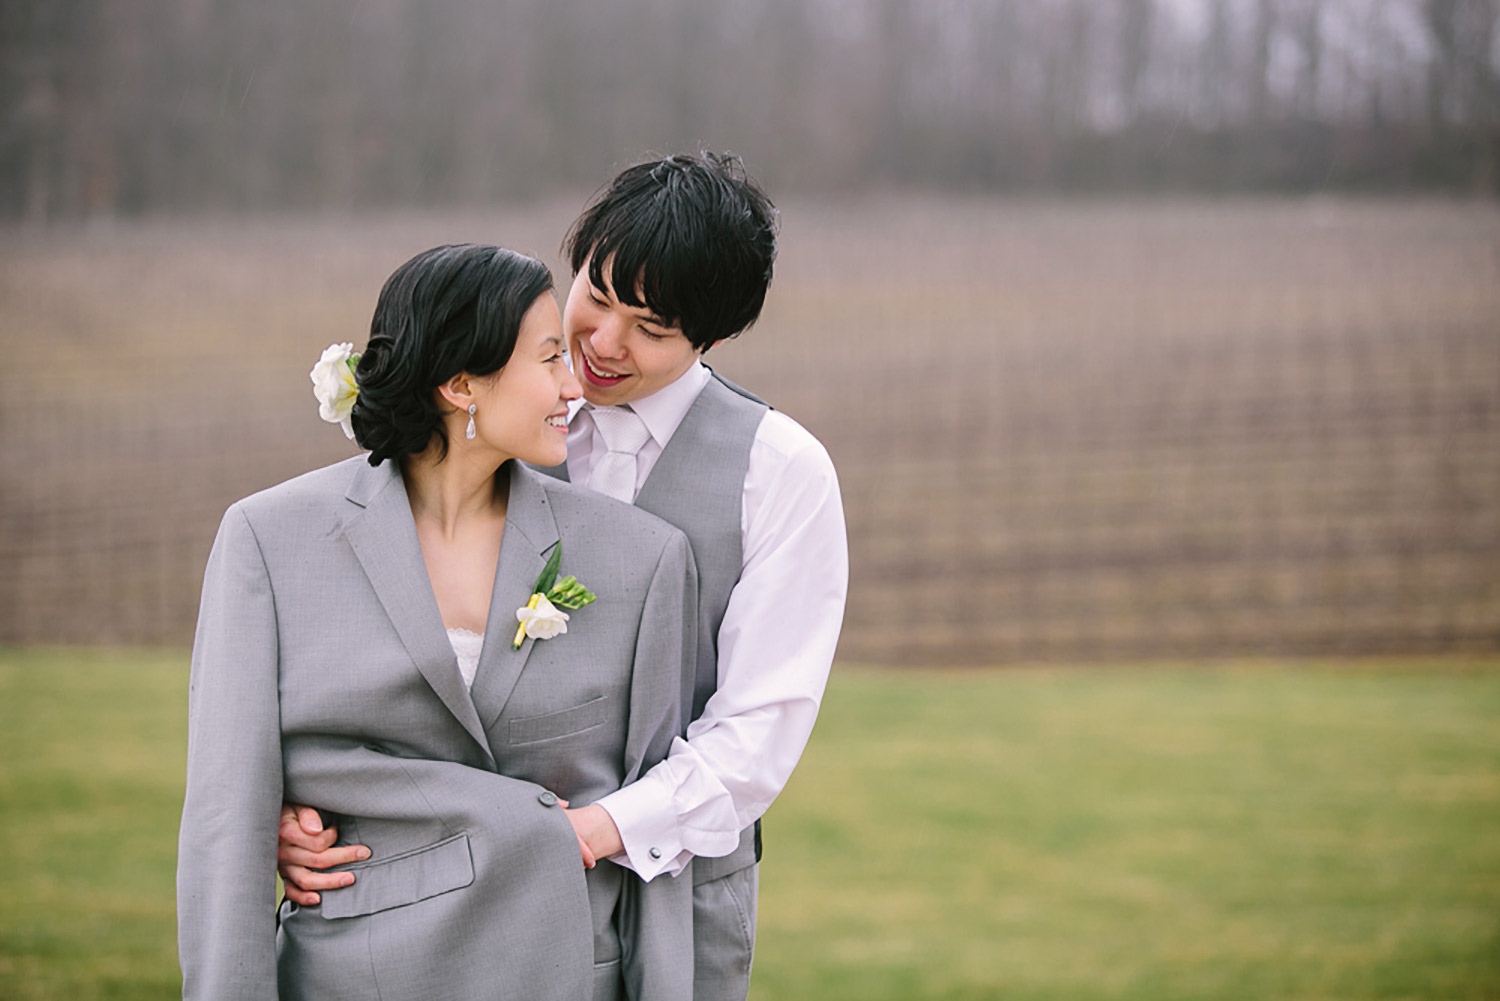 Vineland-Estates-Wedding-Vineyard-Bride-Photo-By-Tamara-Lockwood-Photography-020.jpg